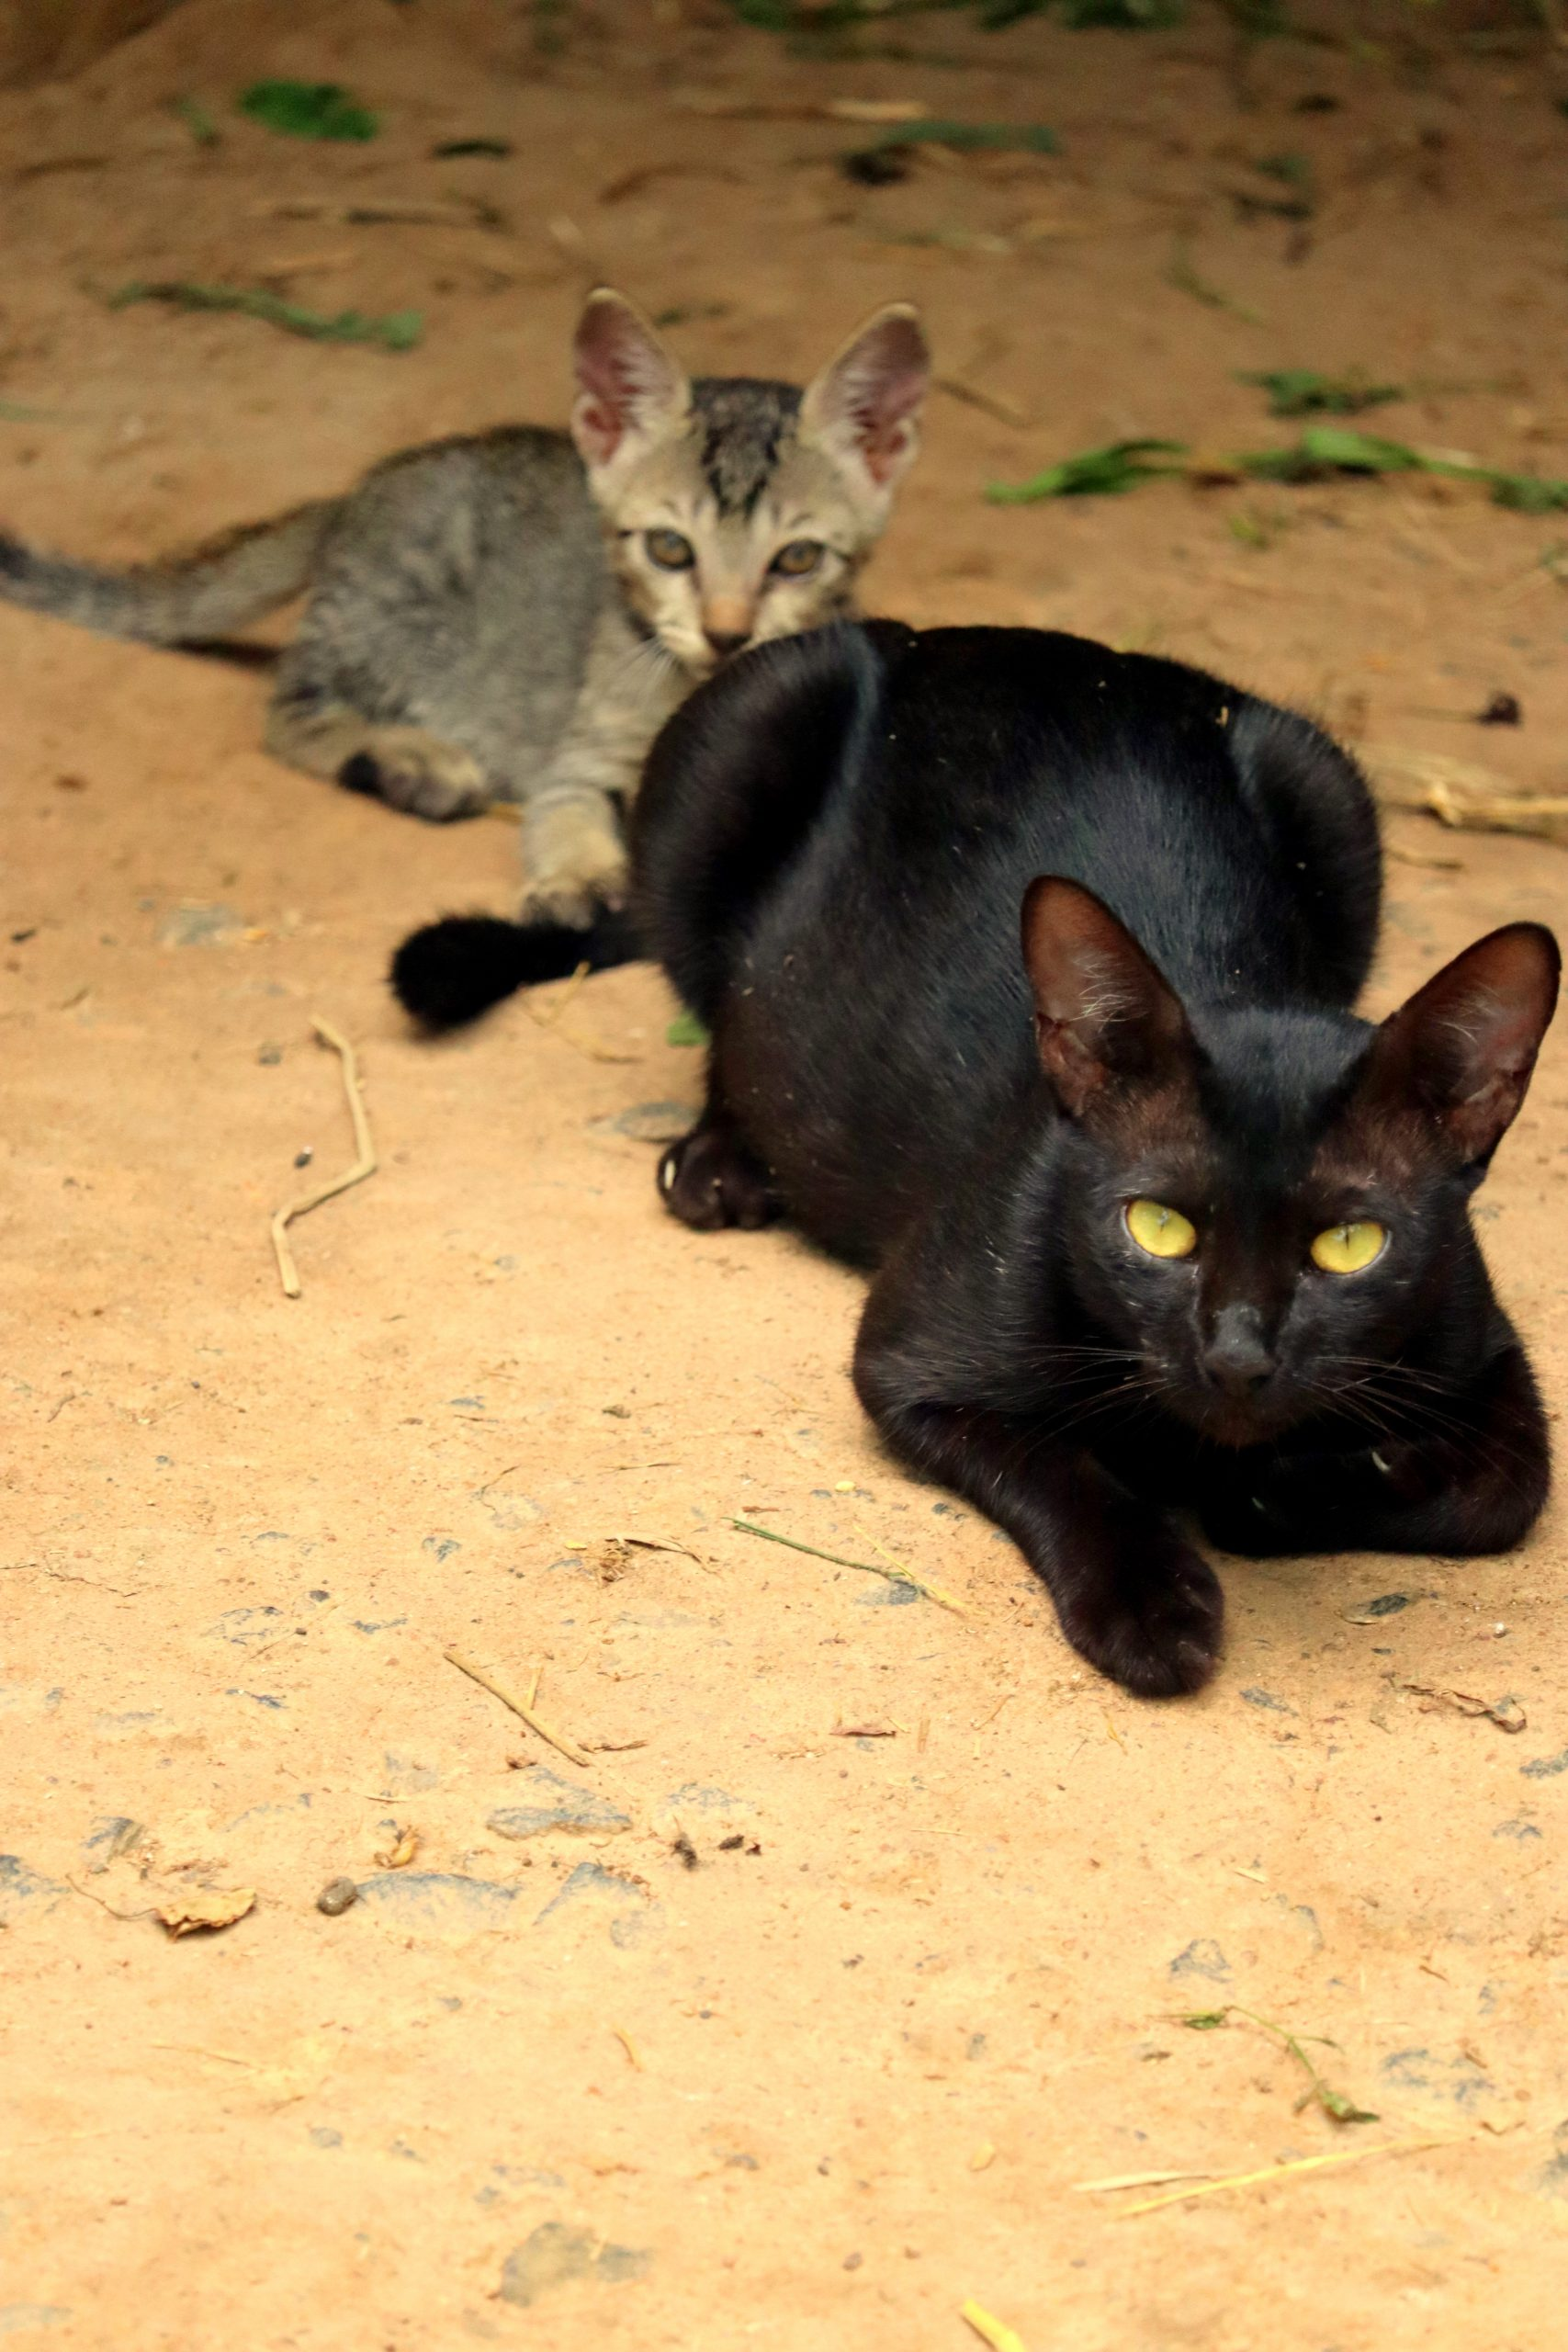 Cats lying on the ground